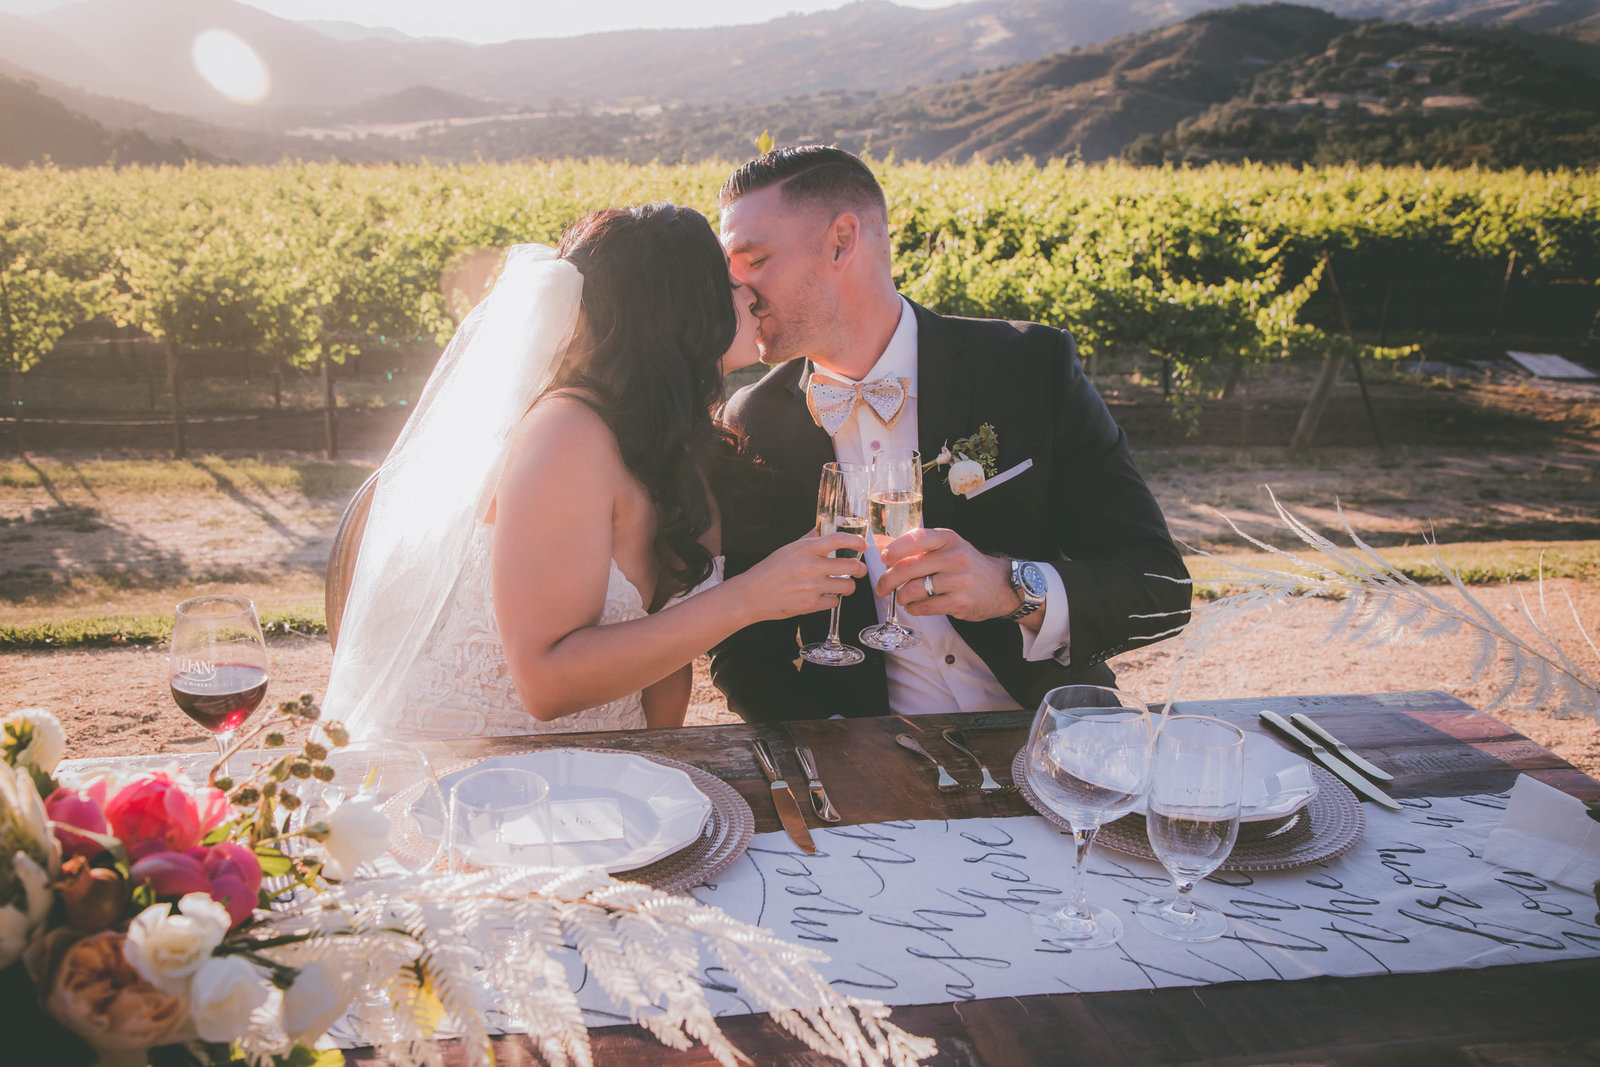 A kiss shared between bride and groom while cheering glasses at a Carmel vineyard.